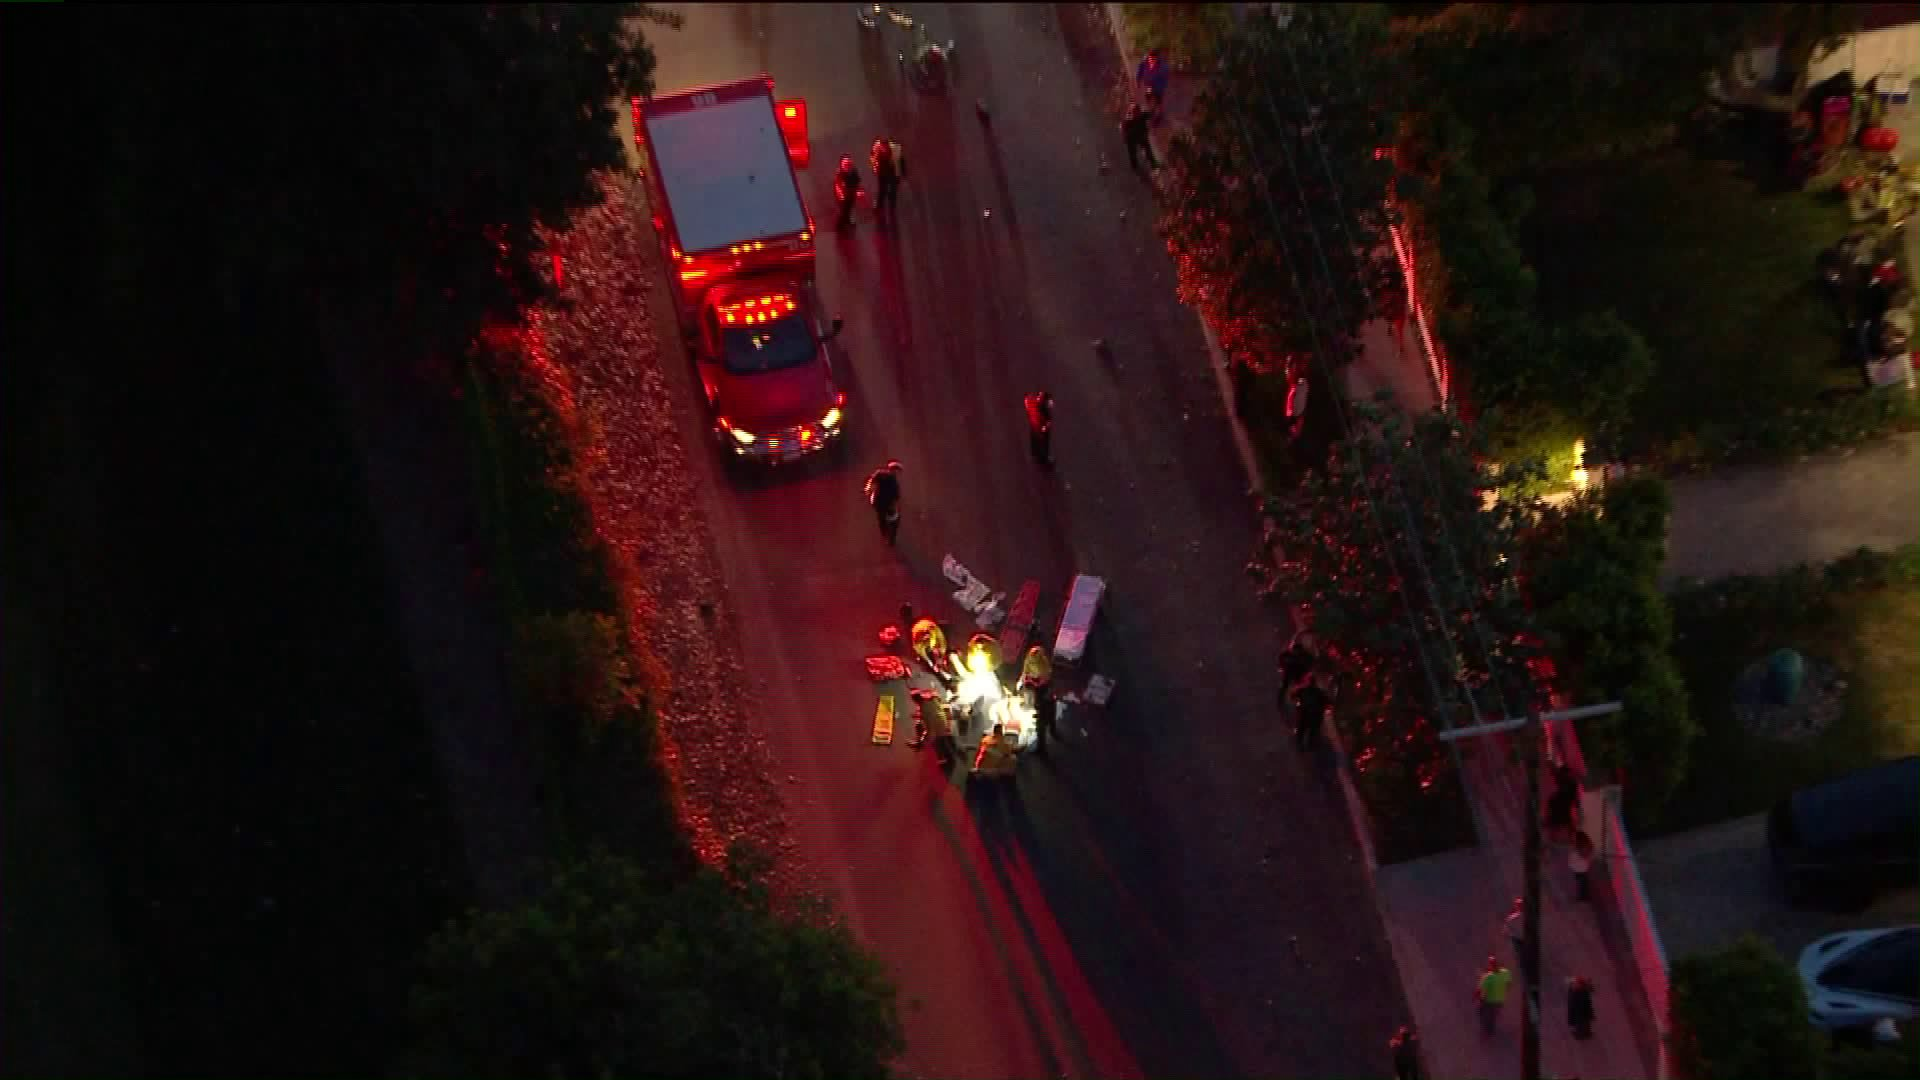 Sky5 footage showed a man and a woman being treated after getting hit by a car on May 11, 2020. (KTLA)